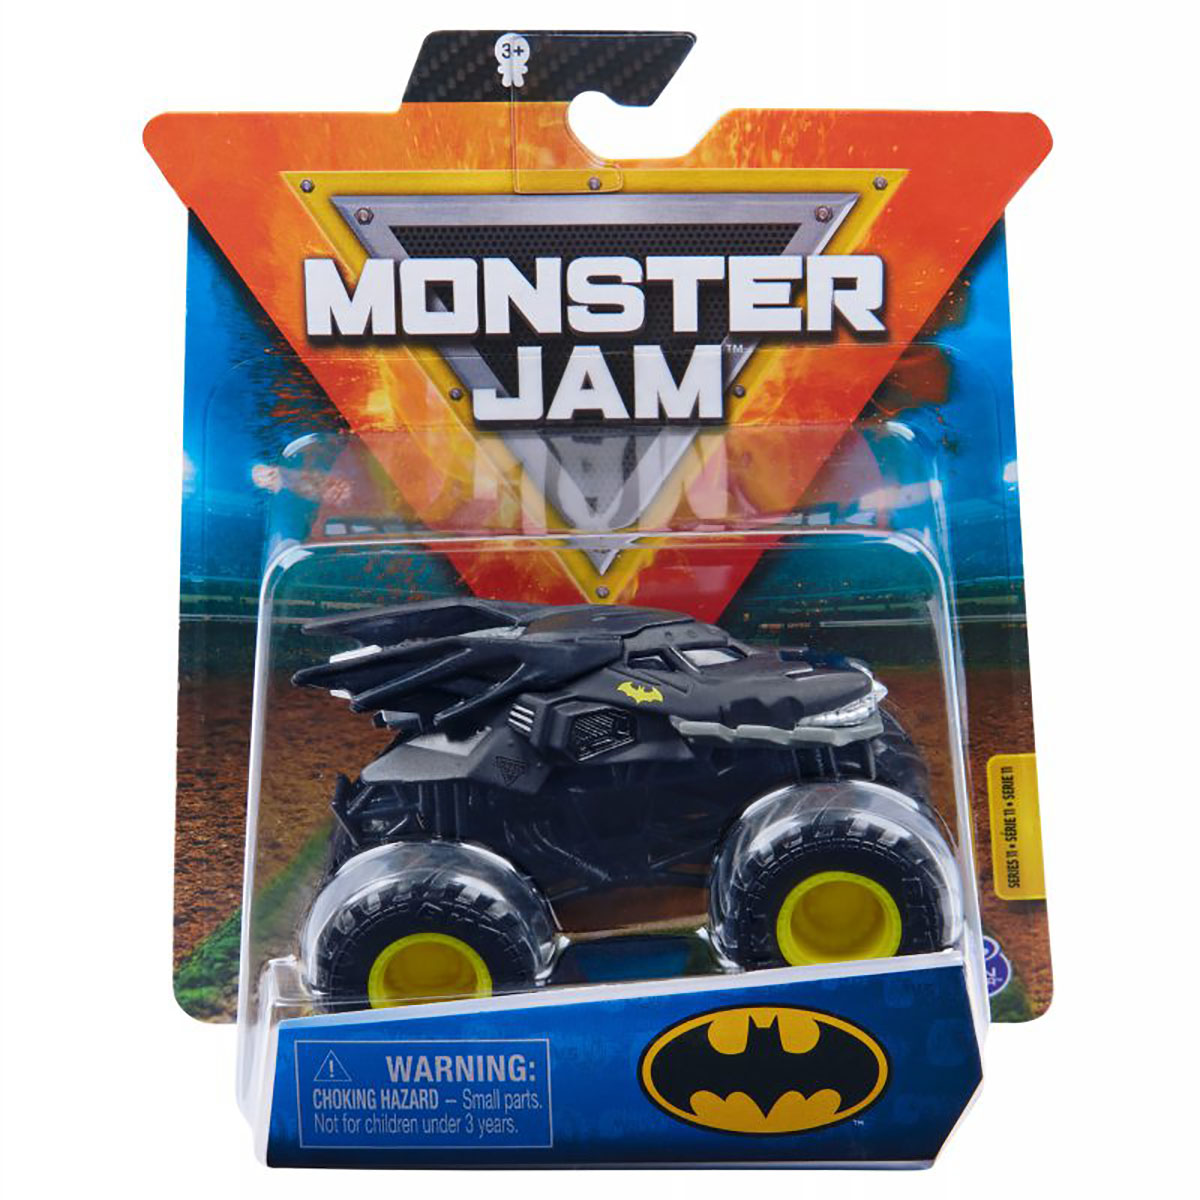 Masinuta Monster Jam, Scara 1:64, Batman, Negru